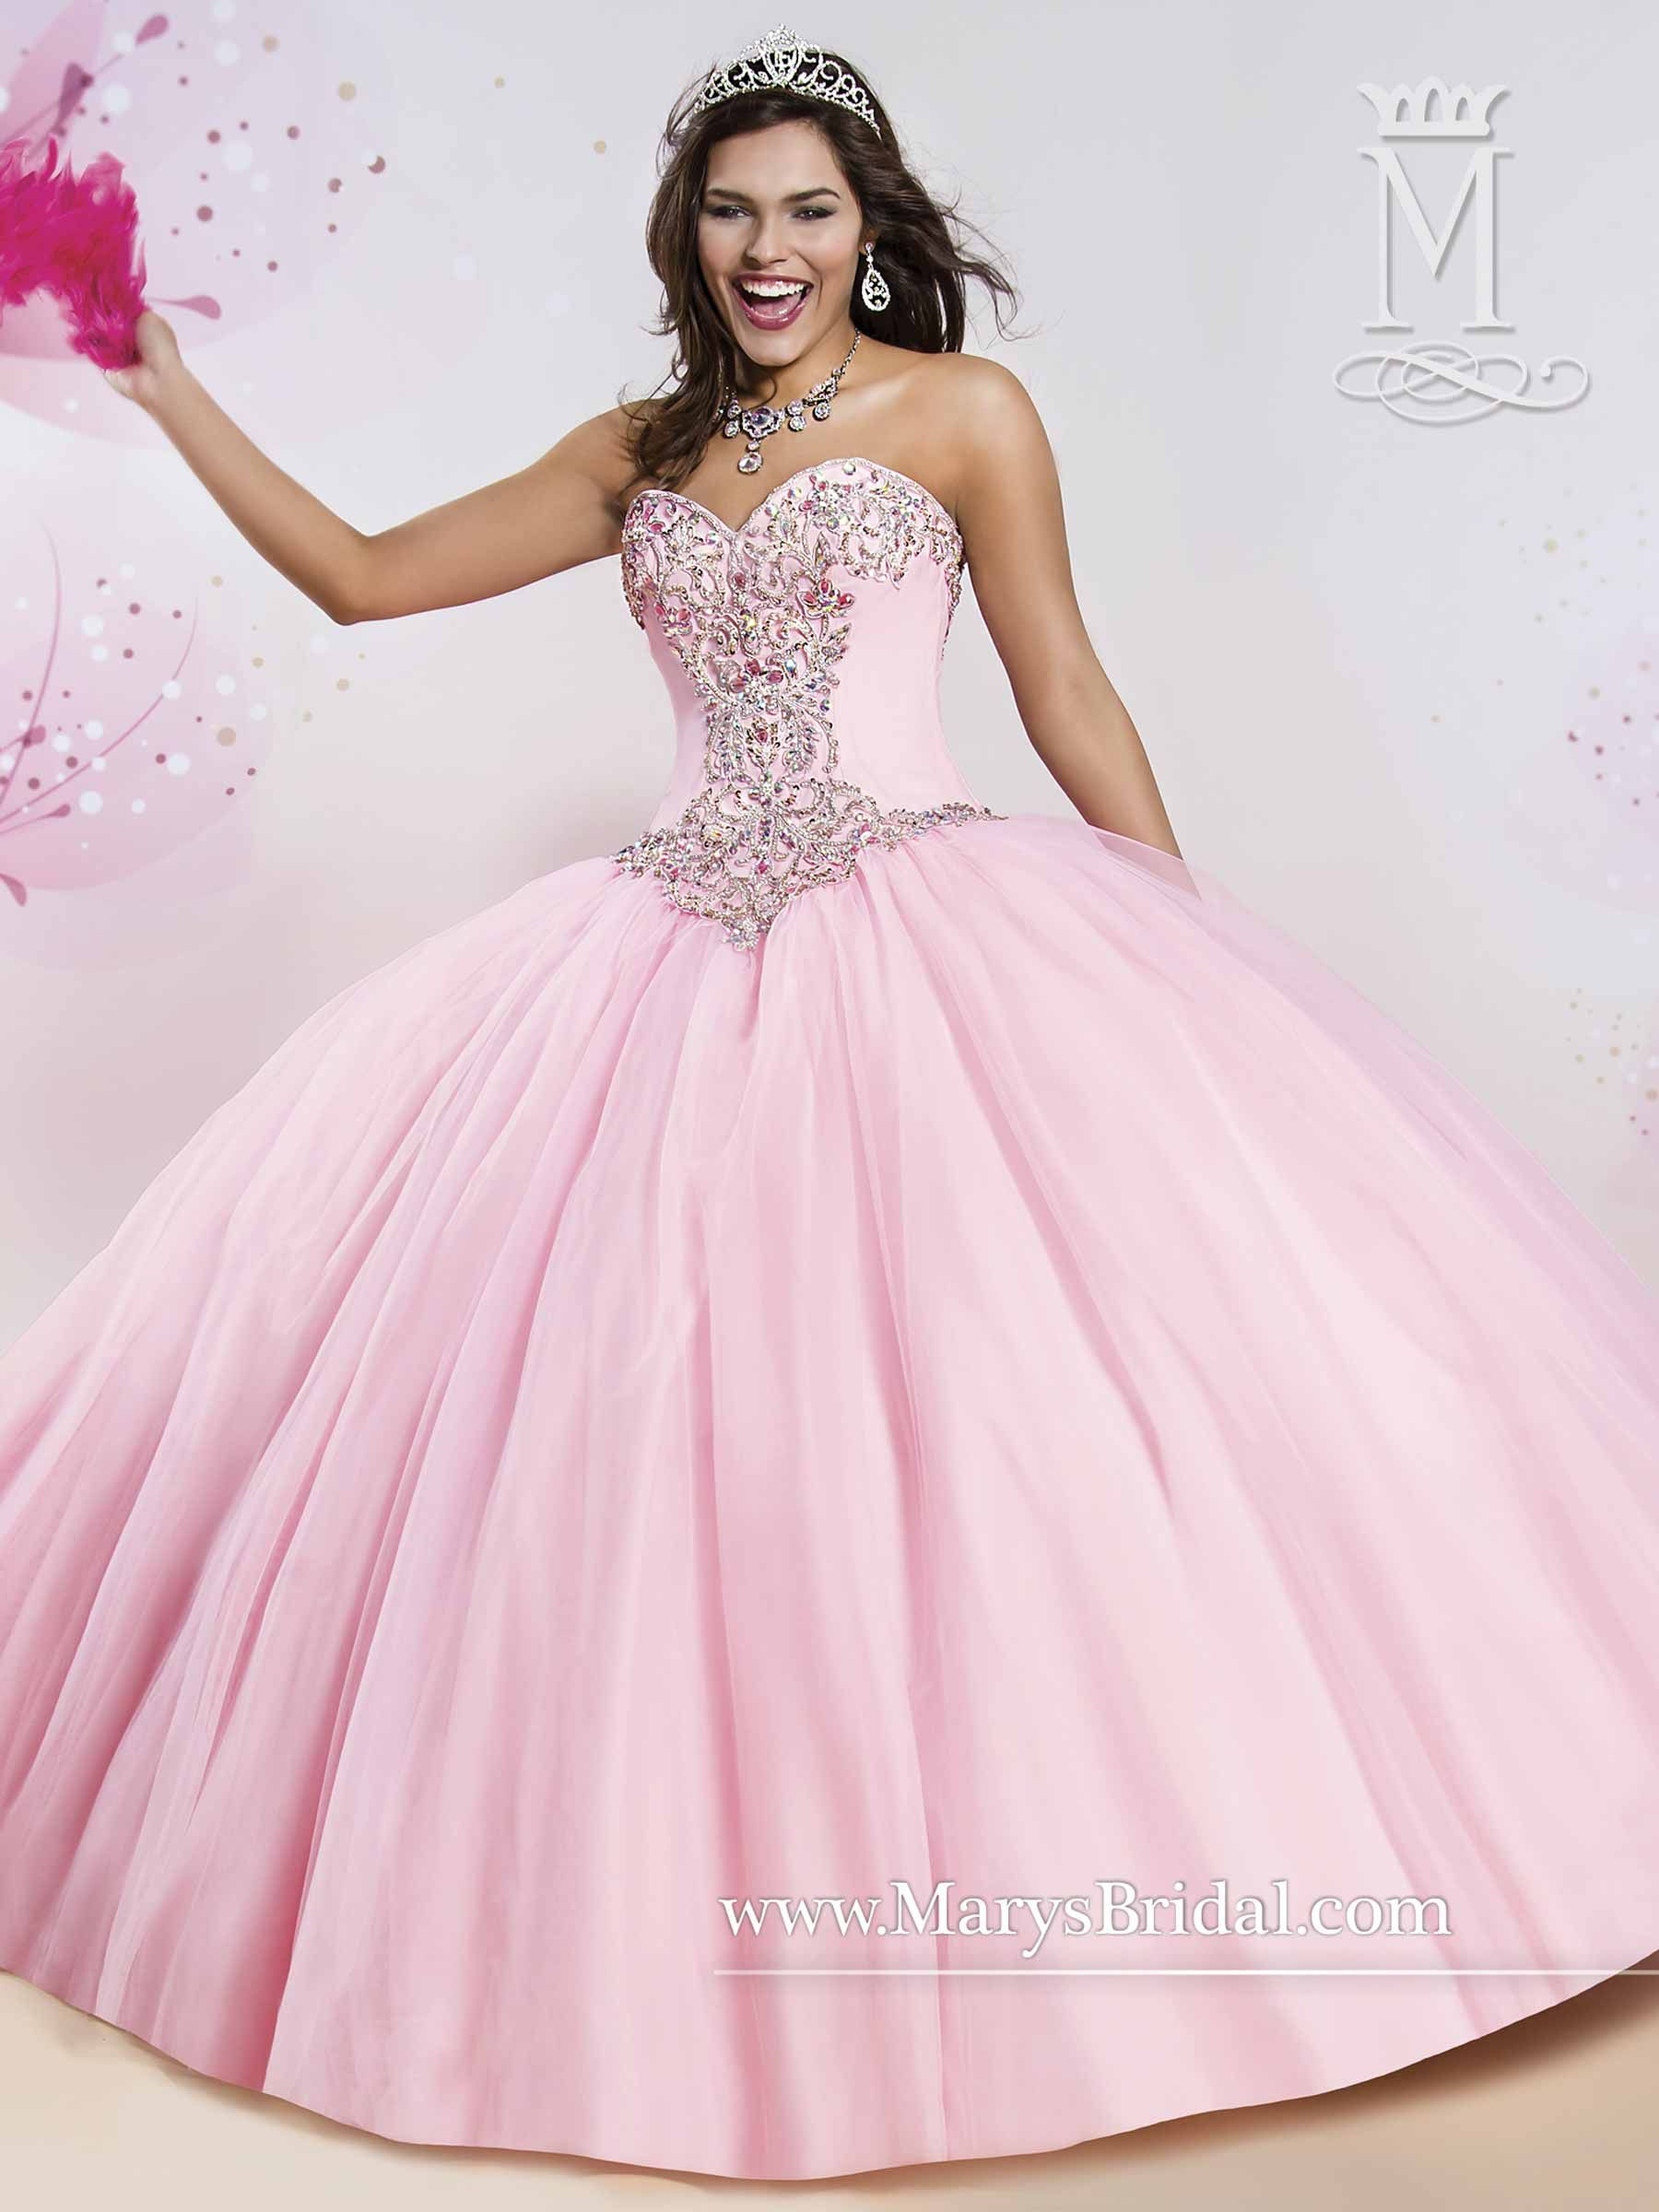 Mary\'s Bridal pink quinceañera dress | Quinceanera Dresses ...